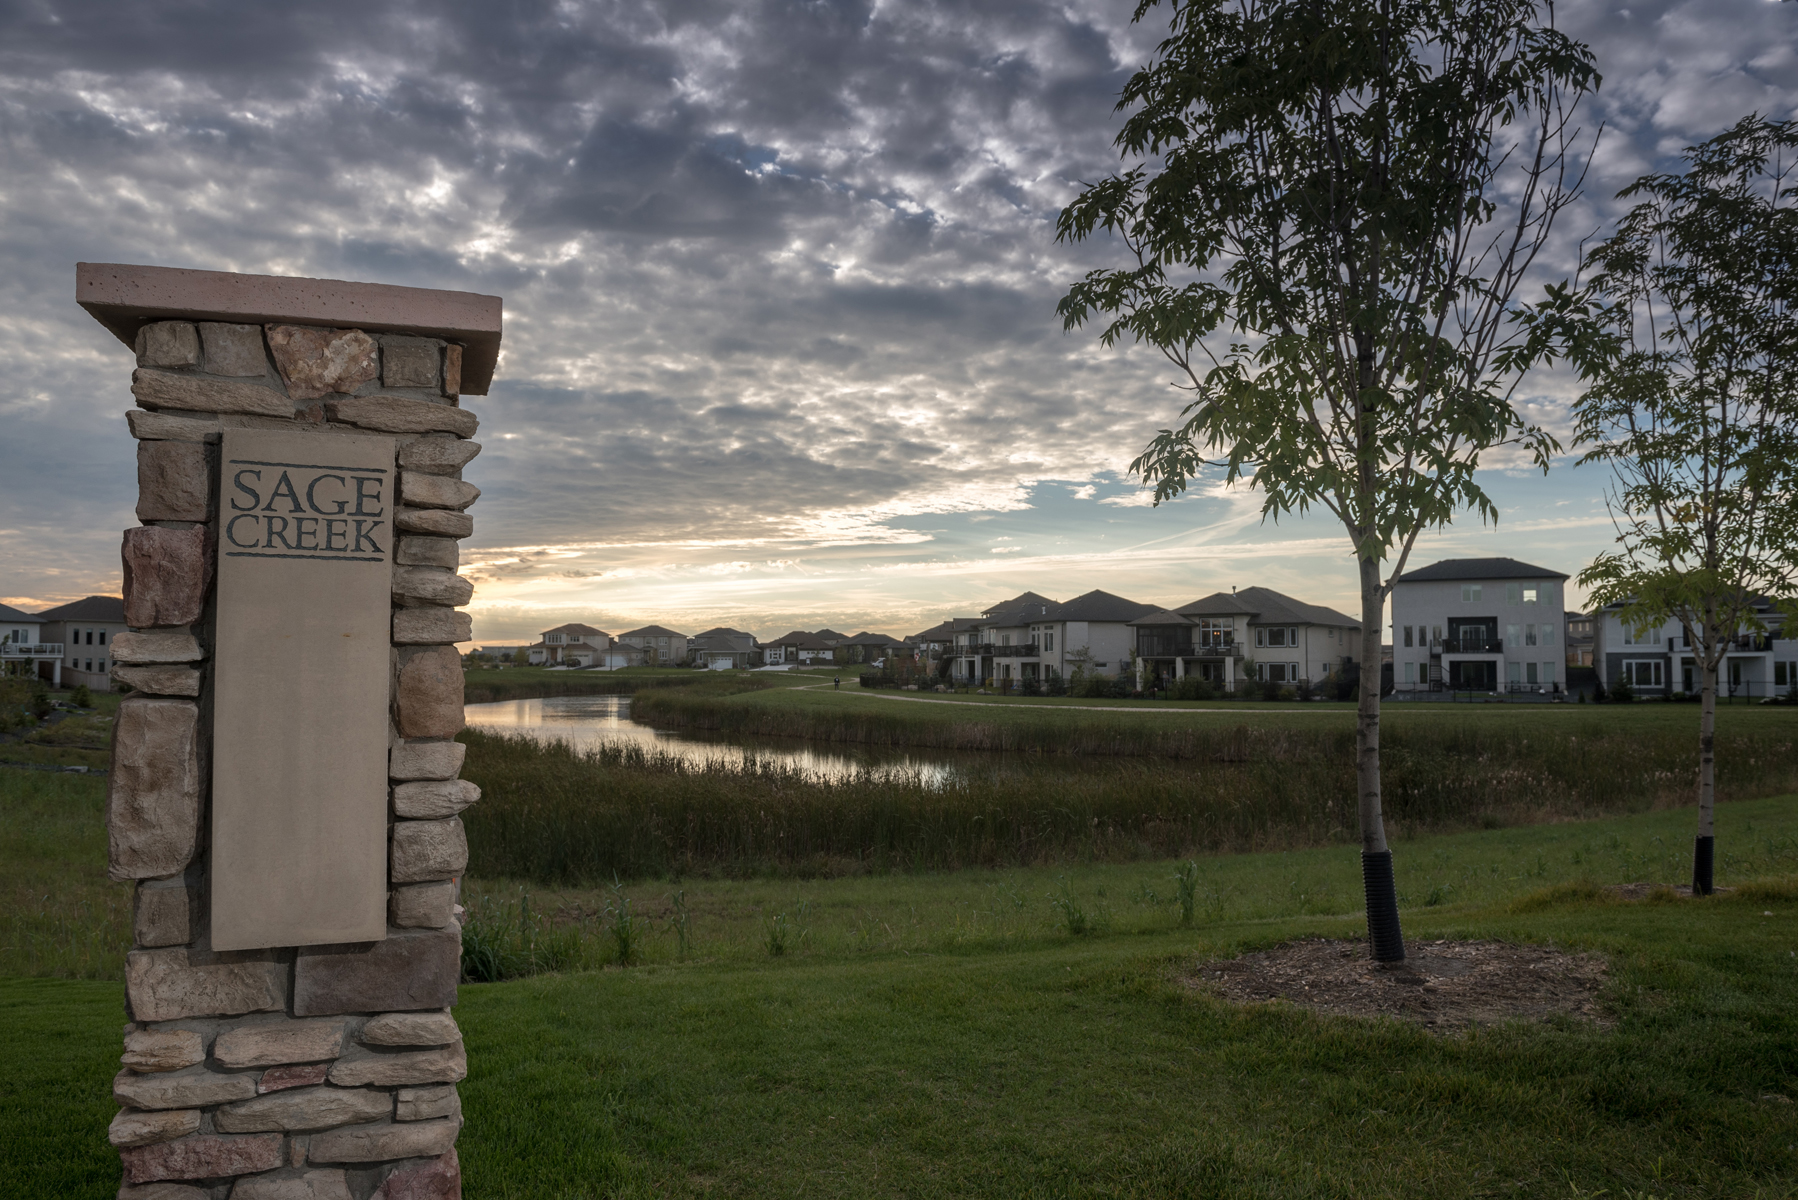 Since 2006, more than 1500 families have made the move to Sage Creek. - A trailblazing community, Sage Creek is ideal for families that are looking to live in a neighbourhood that's teeming with energy and life.